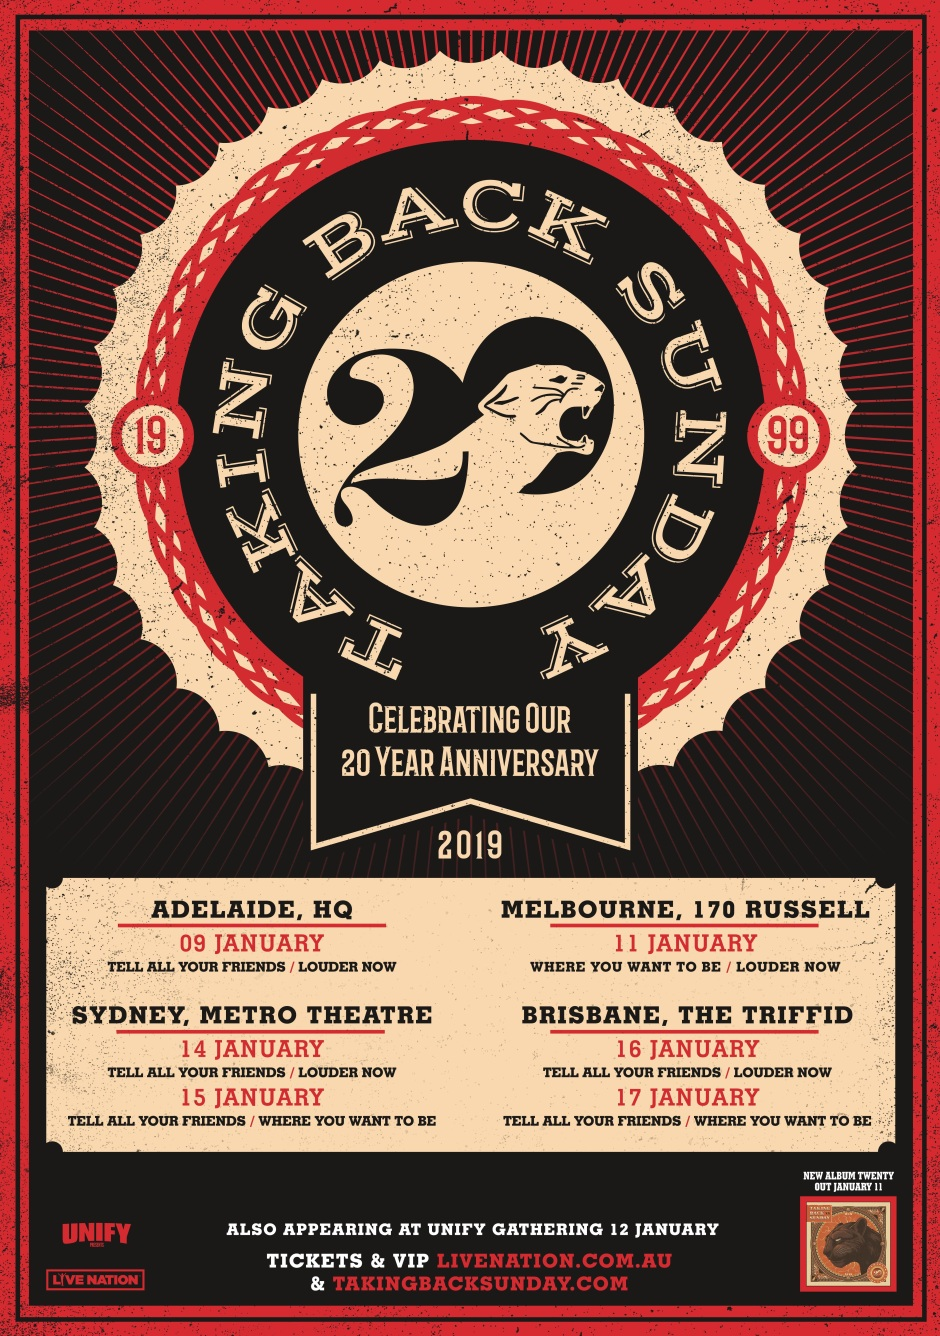 TAKING BACK SUNDAY - AU A2 TOUR POSTER - APPROVED[2][3]-page-001.jpg